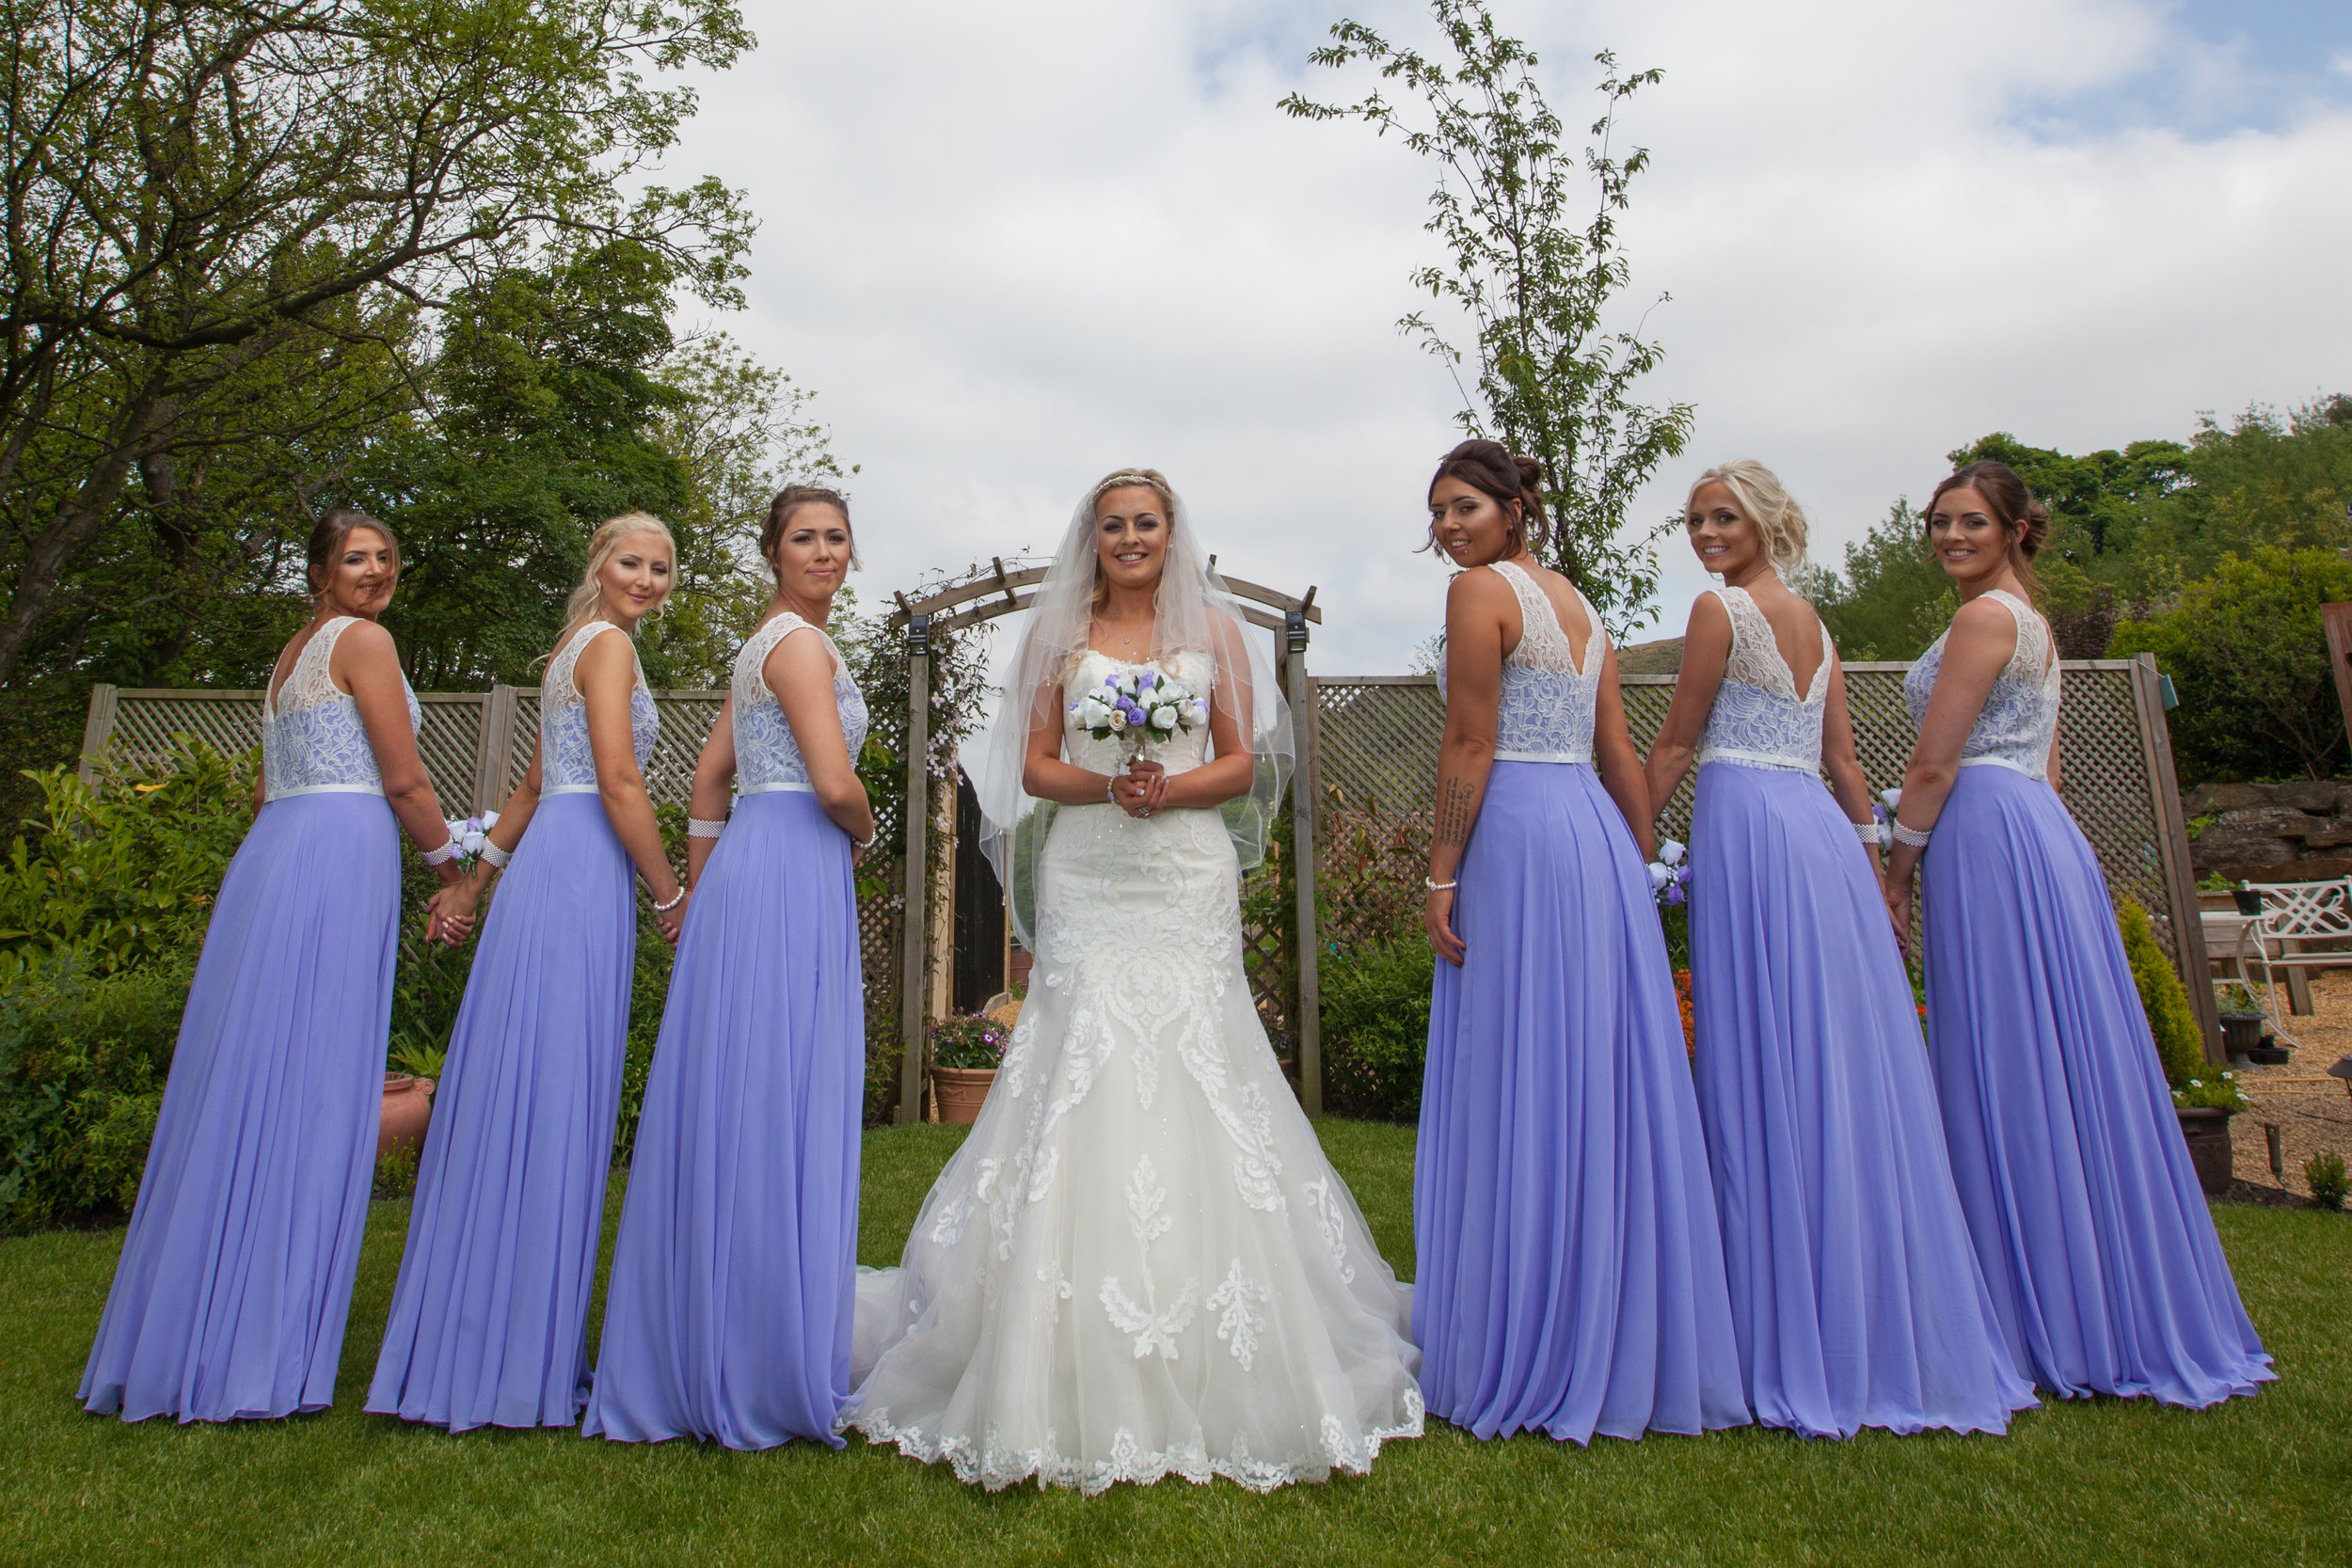 Bride and Bridesmaids at Bridal Preparation